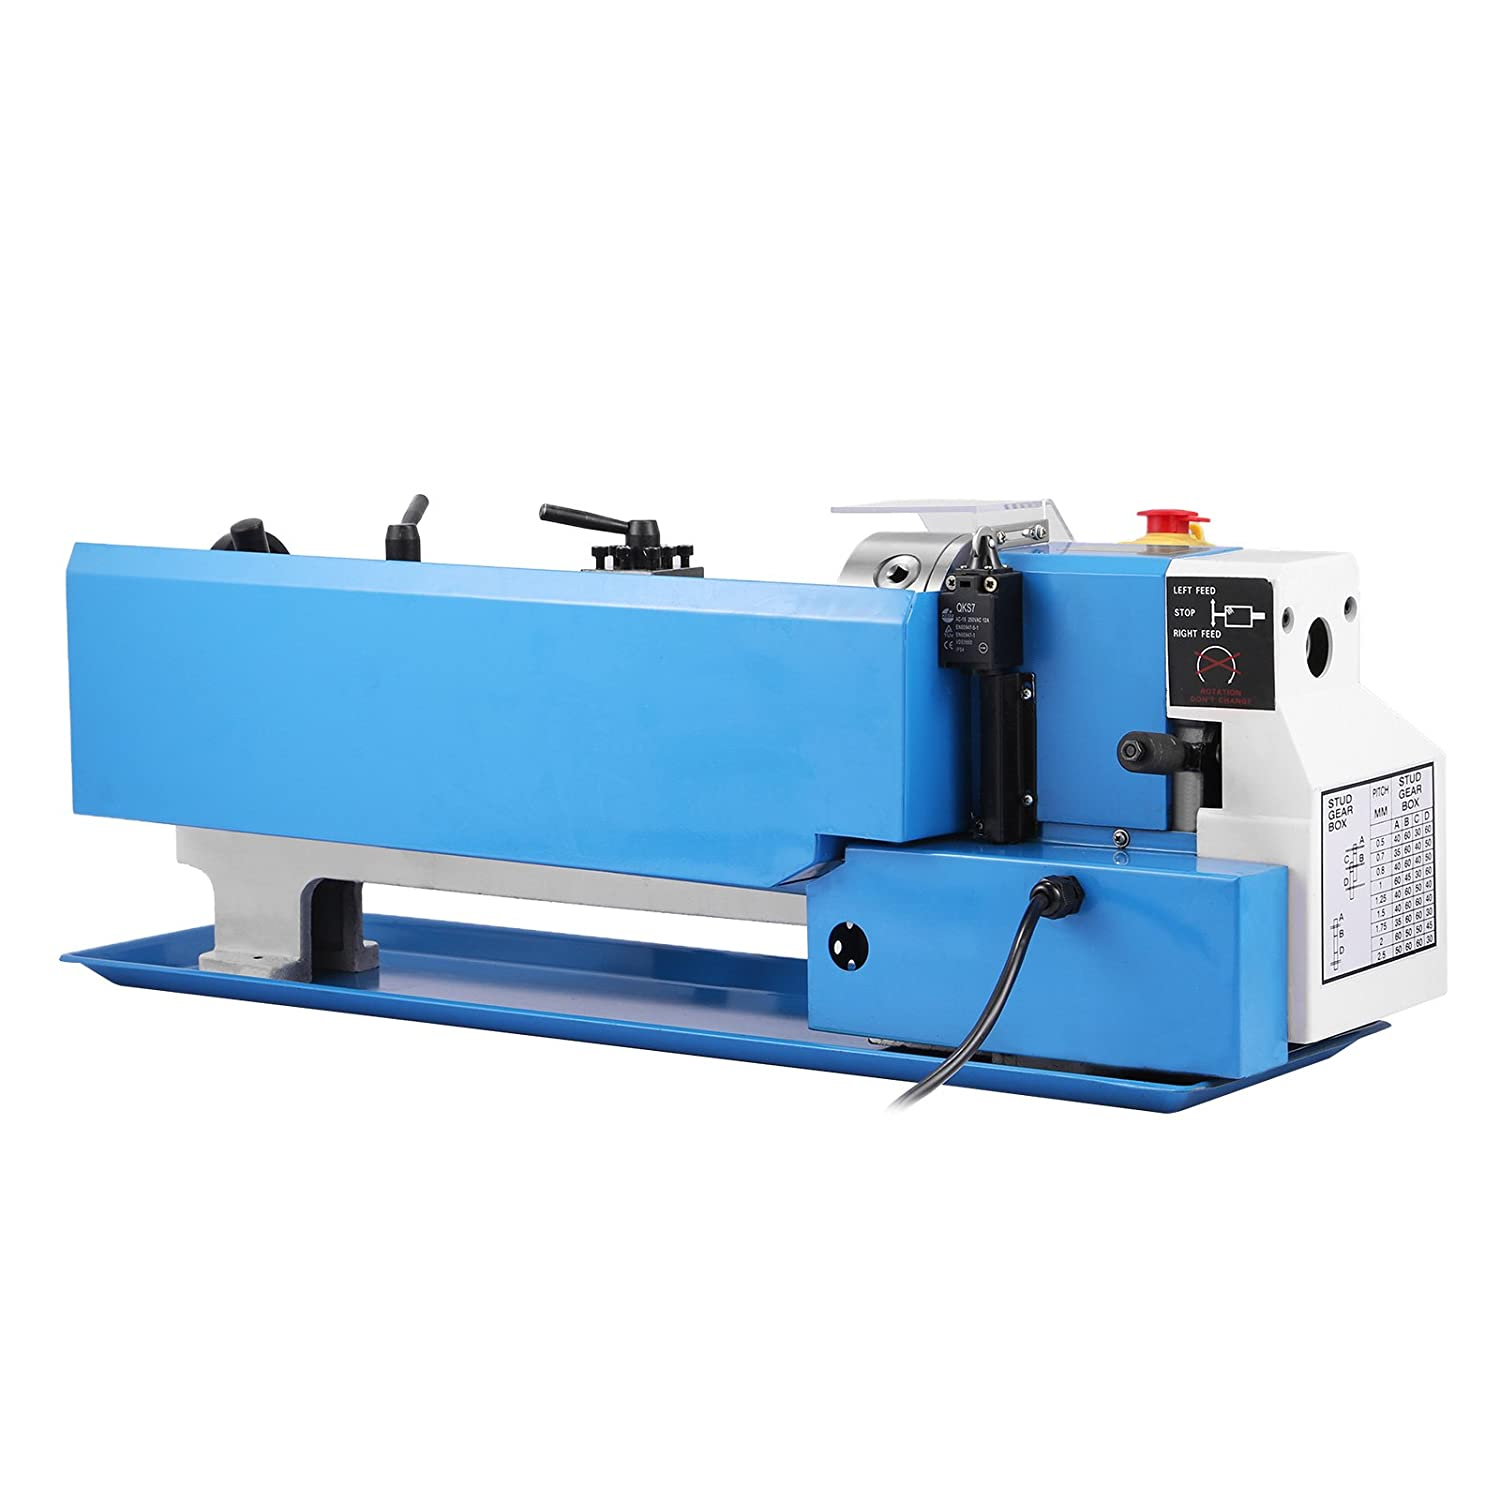 Ultraselect Metal Lathe 7 x 14-Inches Precision Mini Lathe Variable Speed 2500 RPM 550W Mini Metal Lathe Micro Metal Milling Bench Top Lathe Machine 7 x 14 Inch 550W